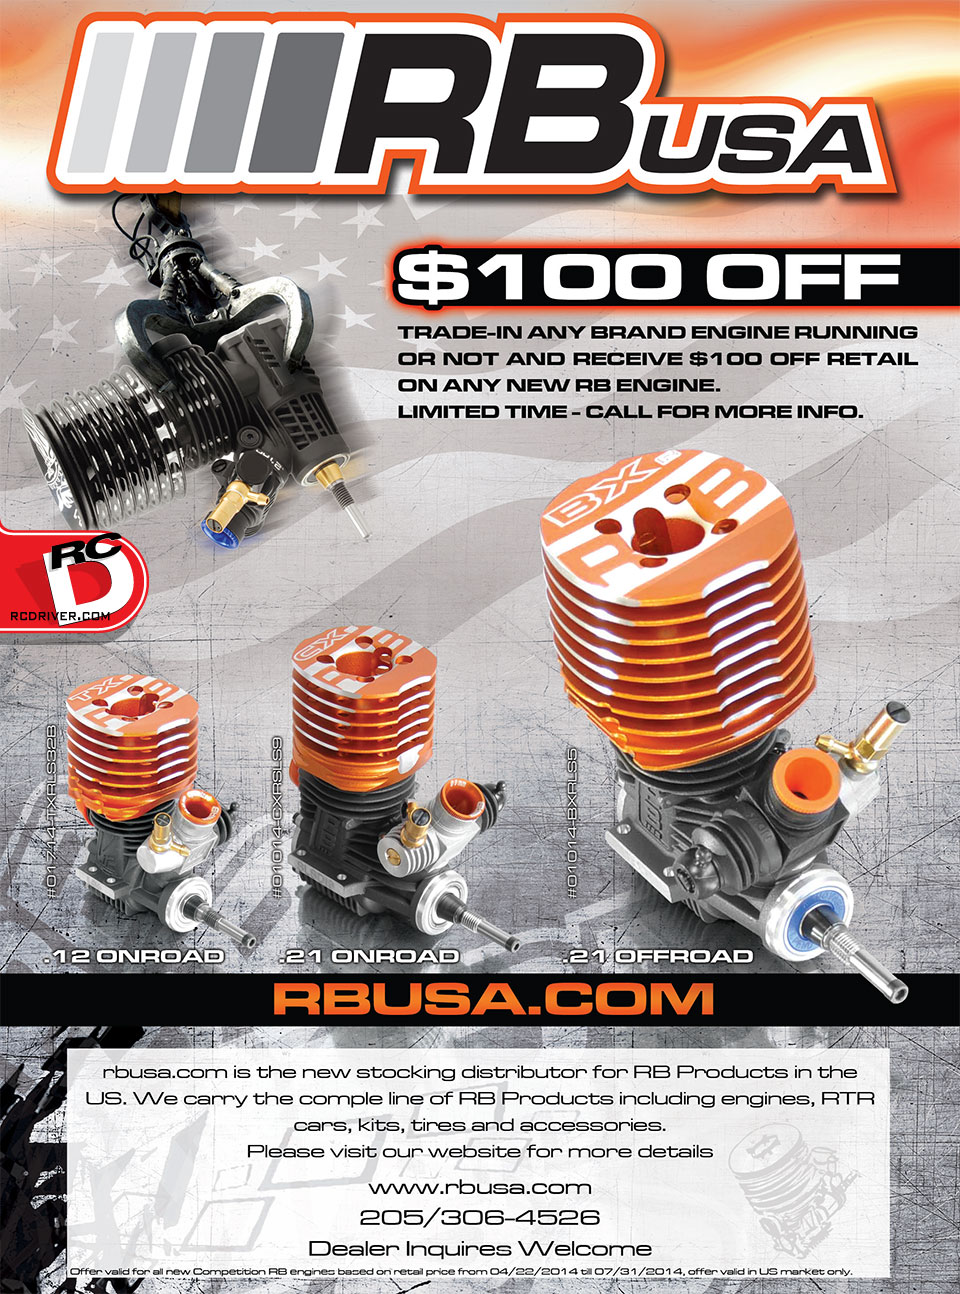 RB USA Offers $100 For Trade In Engines